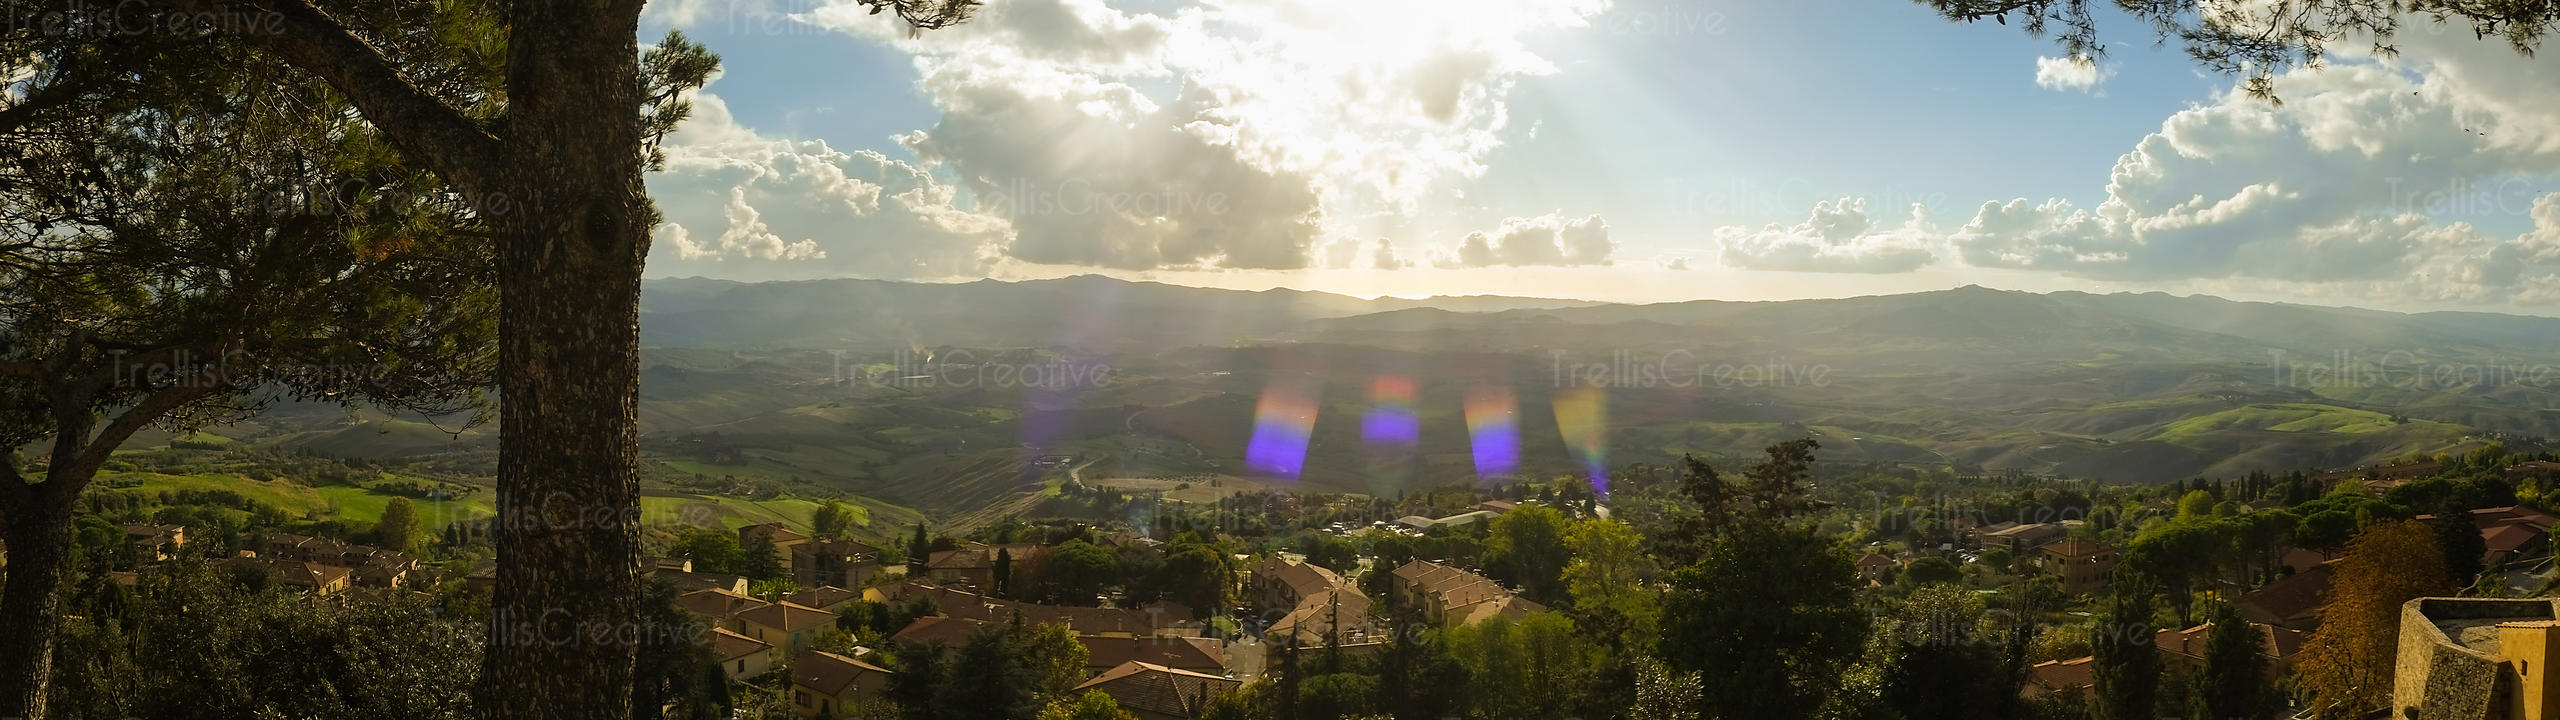 View of the countryside from the hilltop town of Volterra, Italy